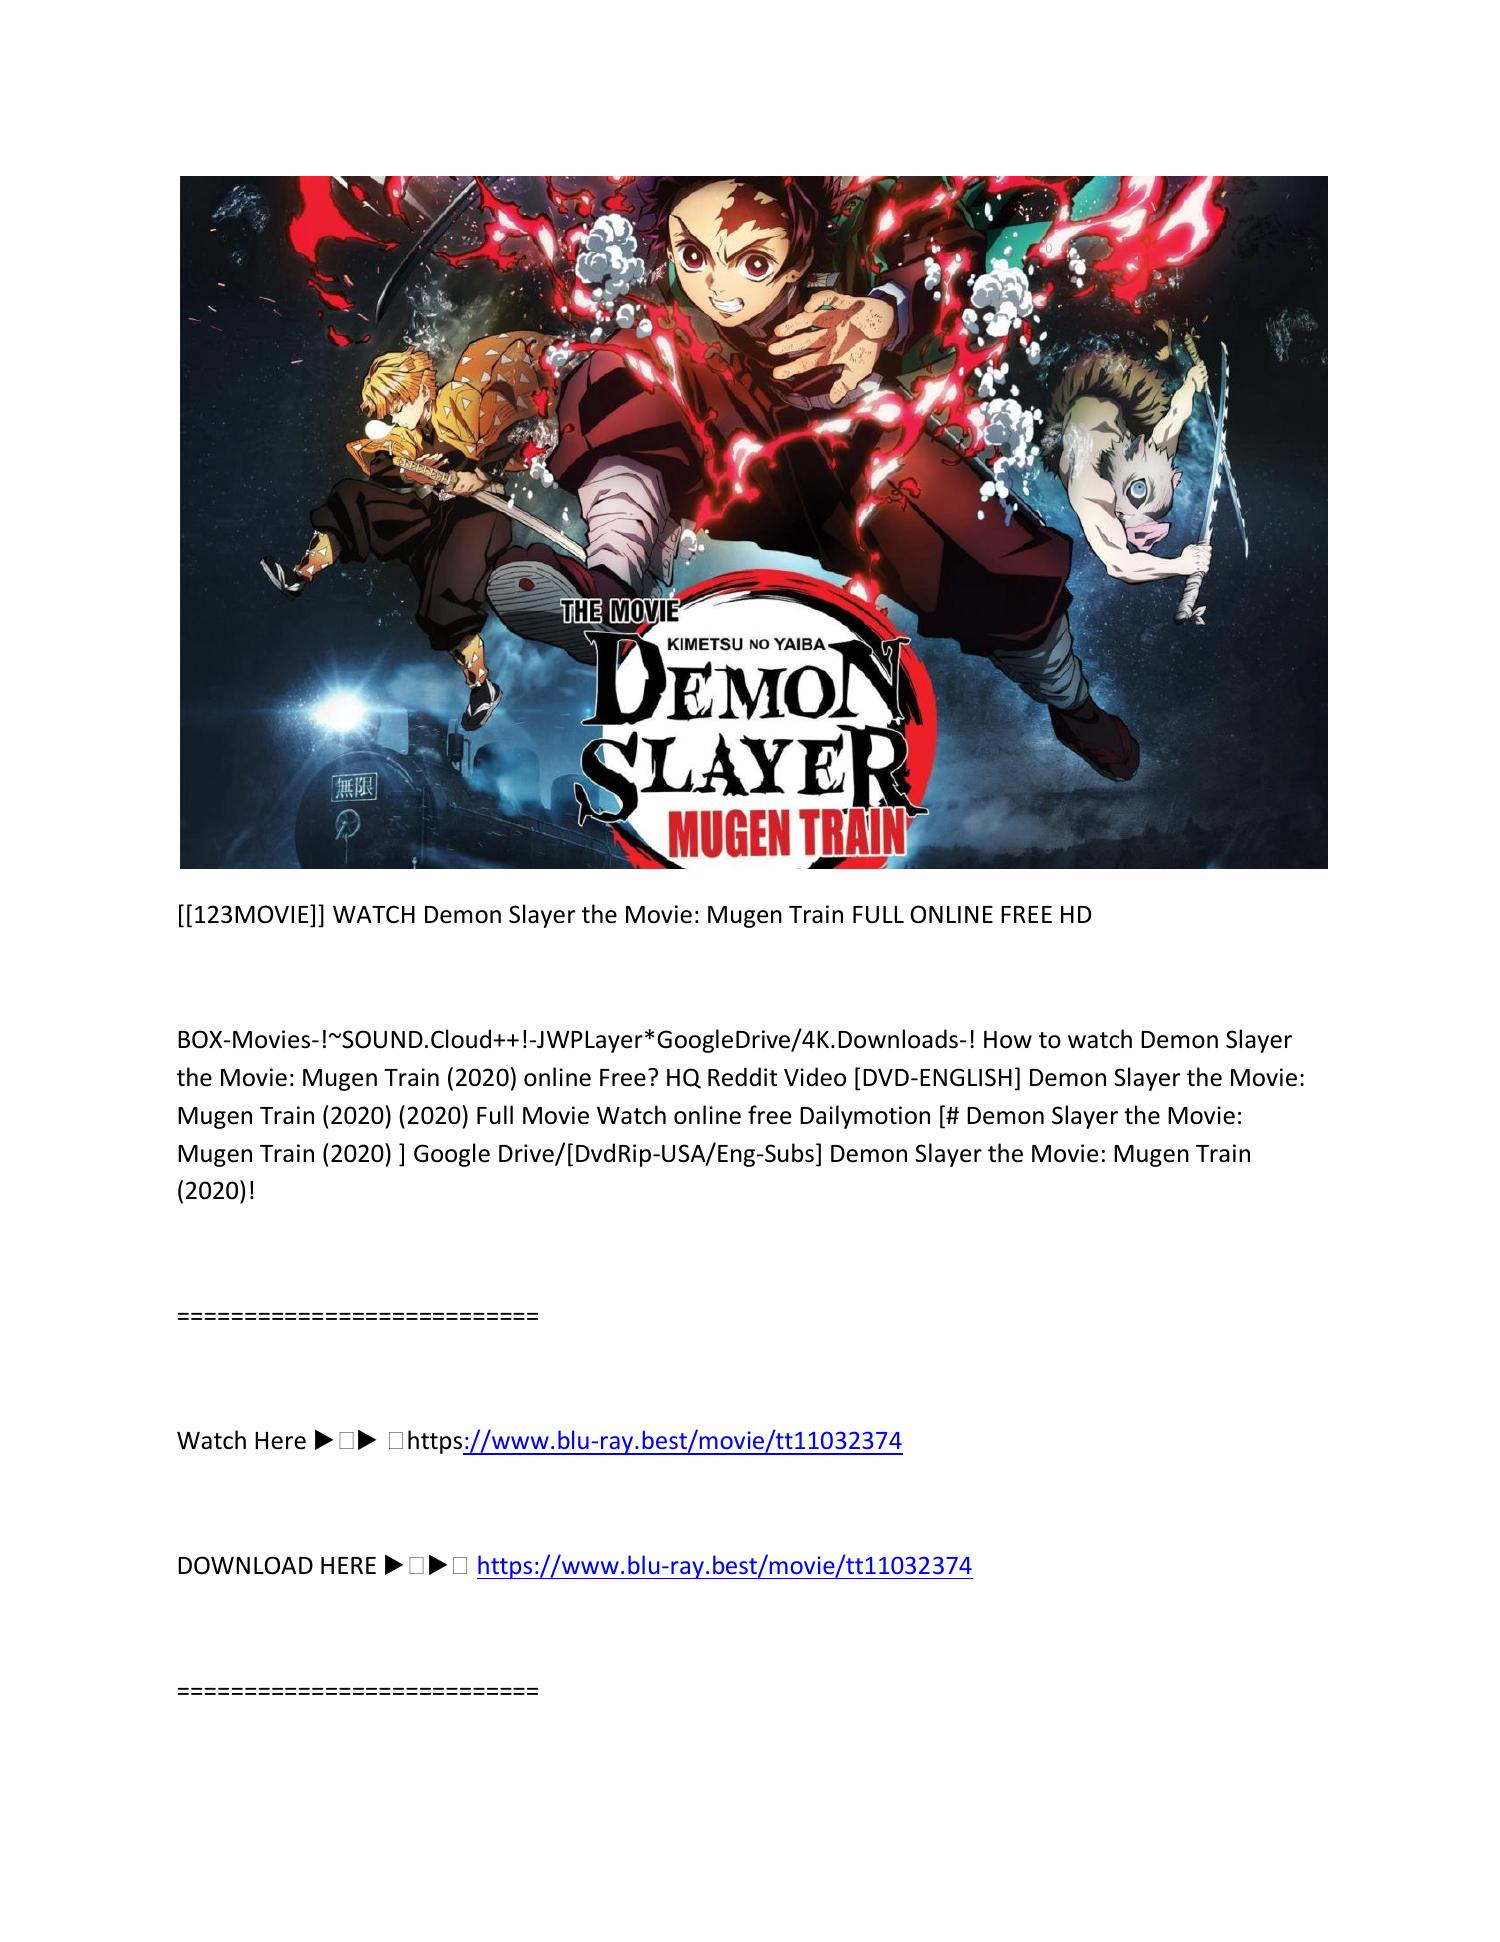 123movie Watch Demon Slayer The Movie Mugen Train Full Online Free Hd Pdf Docdroid All content must be related to kimetsu no yaiba. demon slayer the movie mugen train